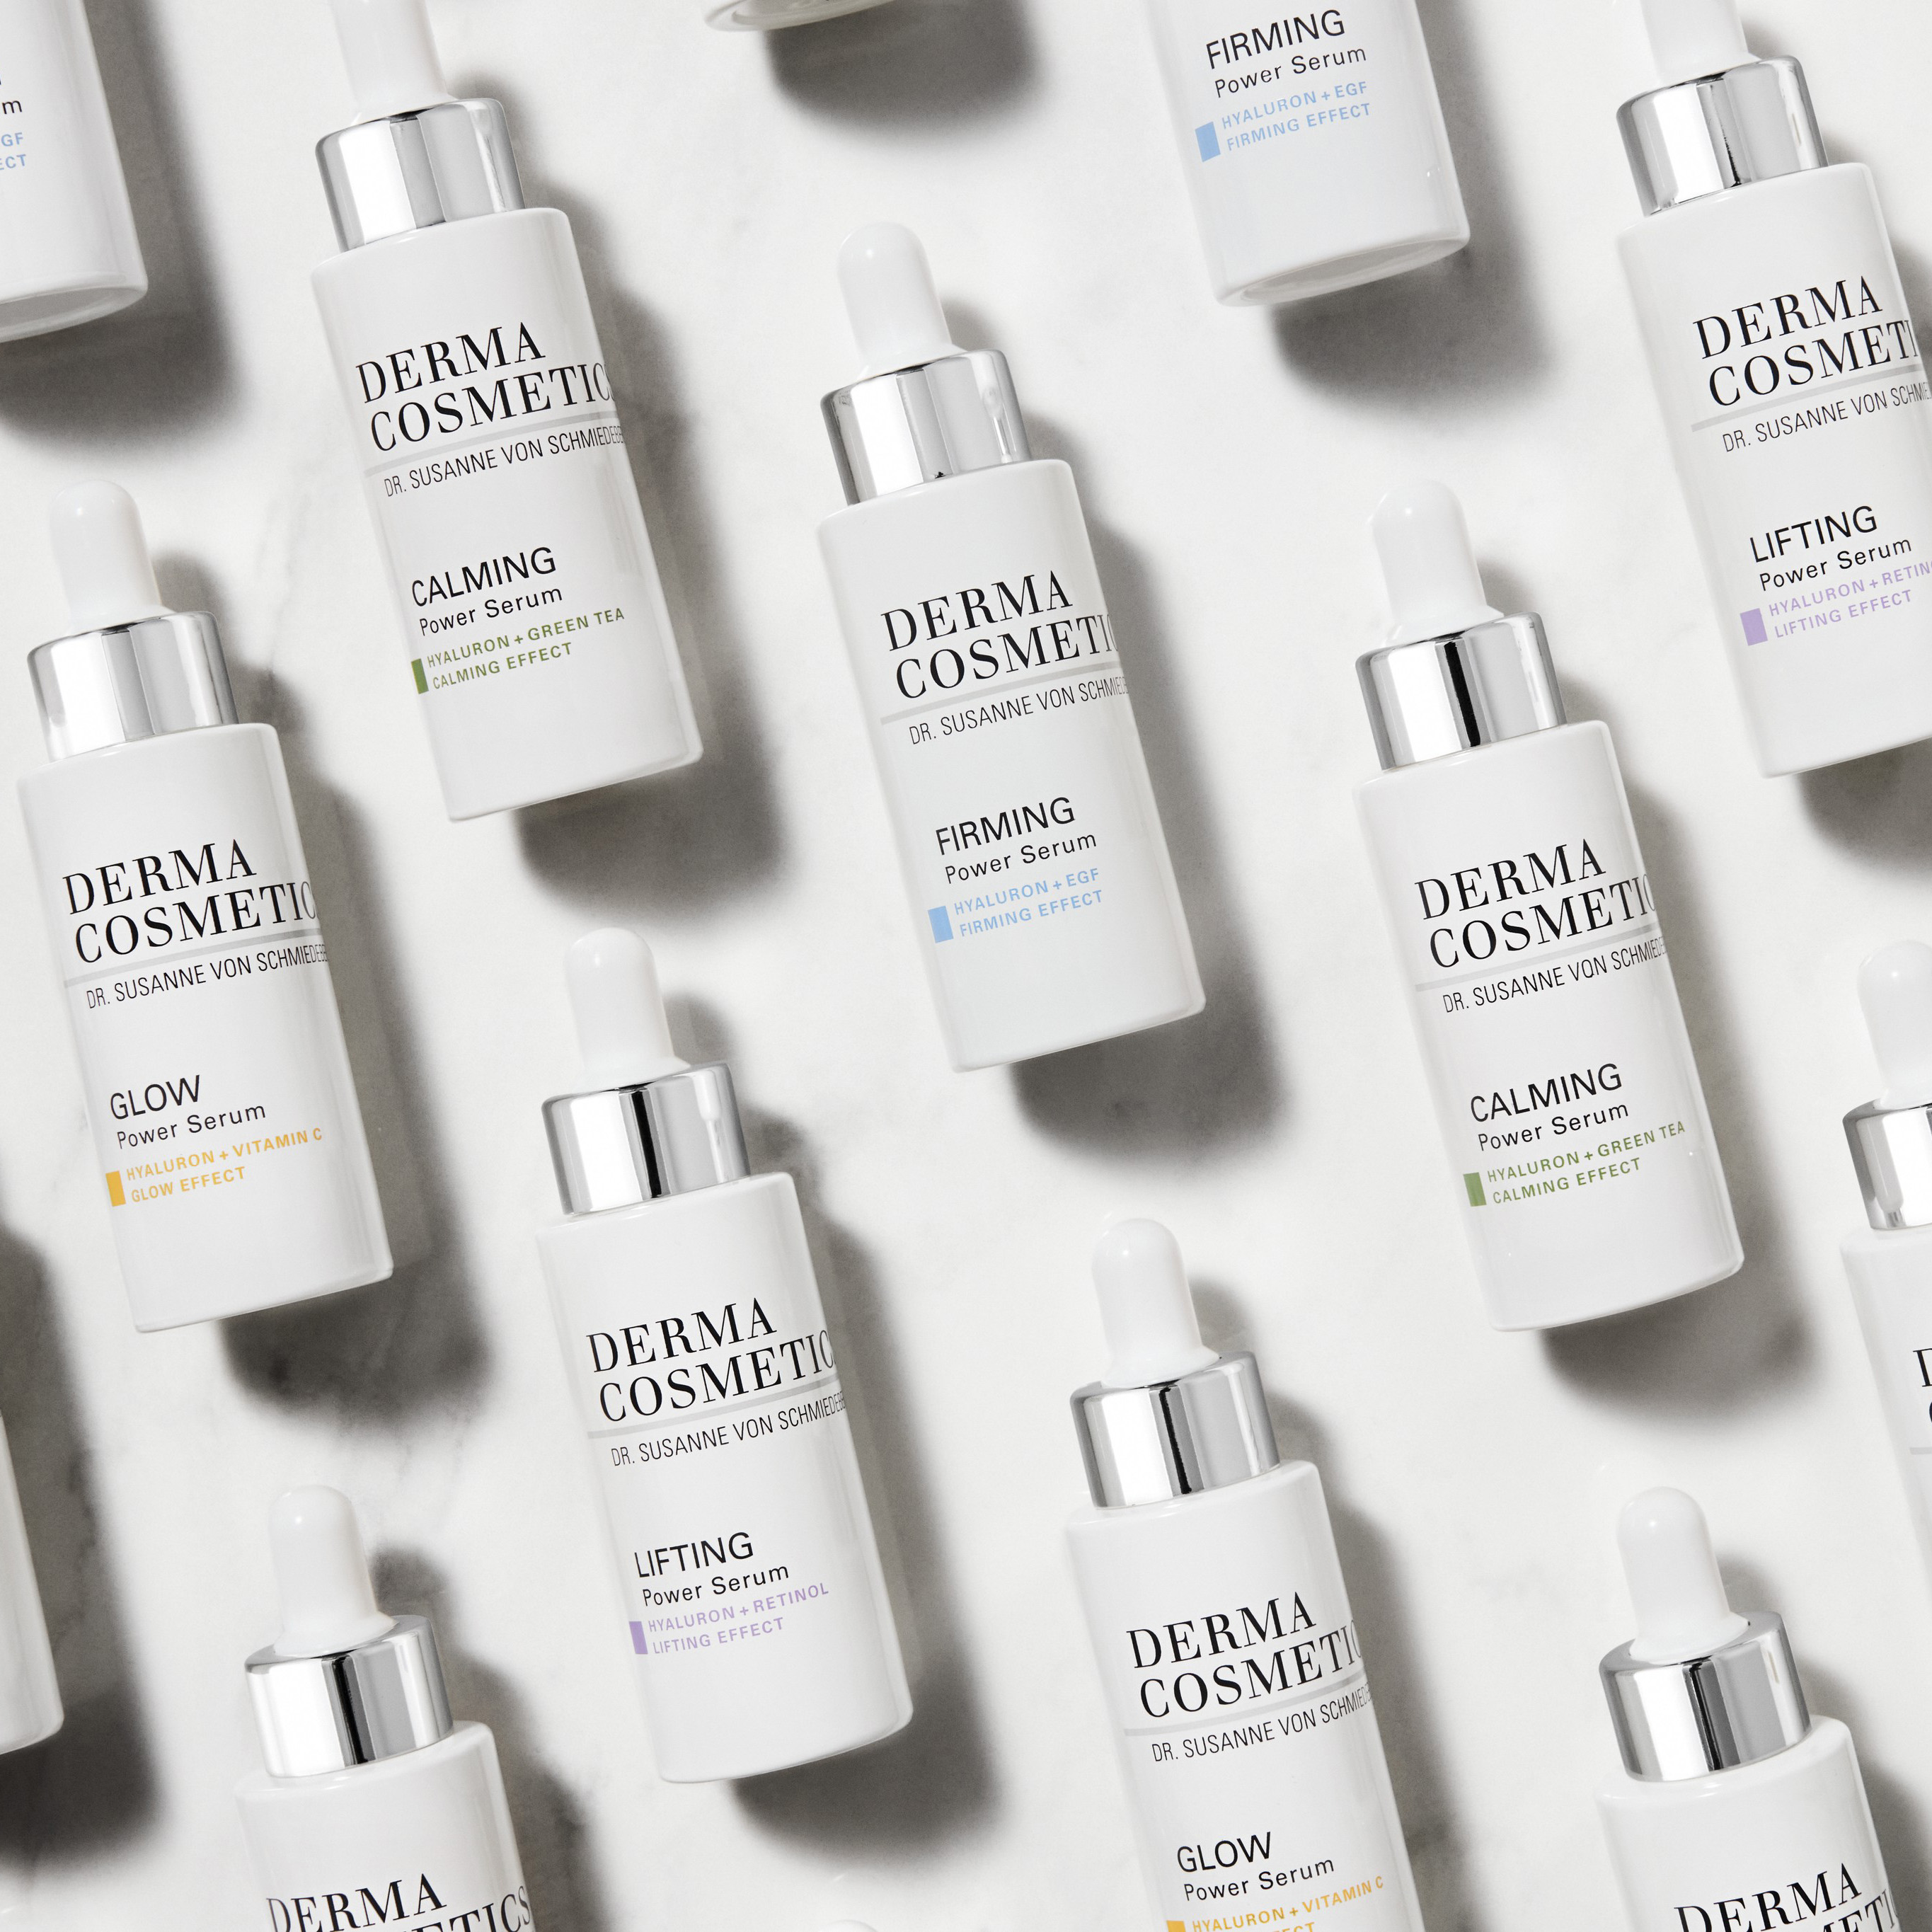 Skincare-product-dermacosmetics-serum-range-army-unlimited-Web-Rendition